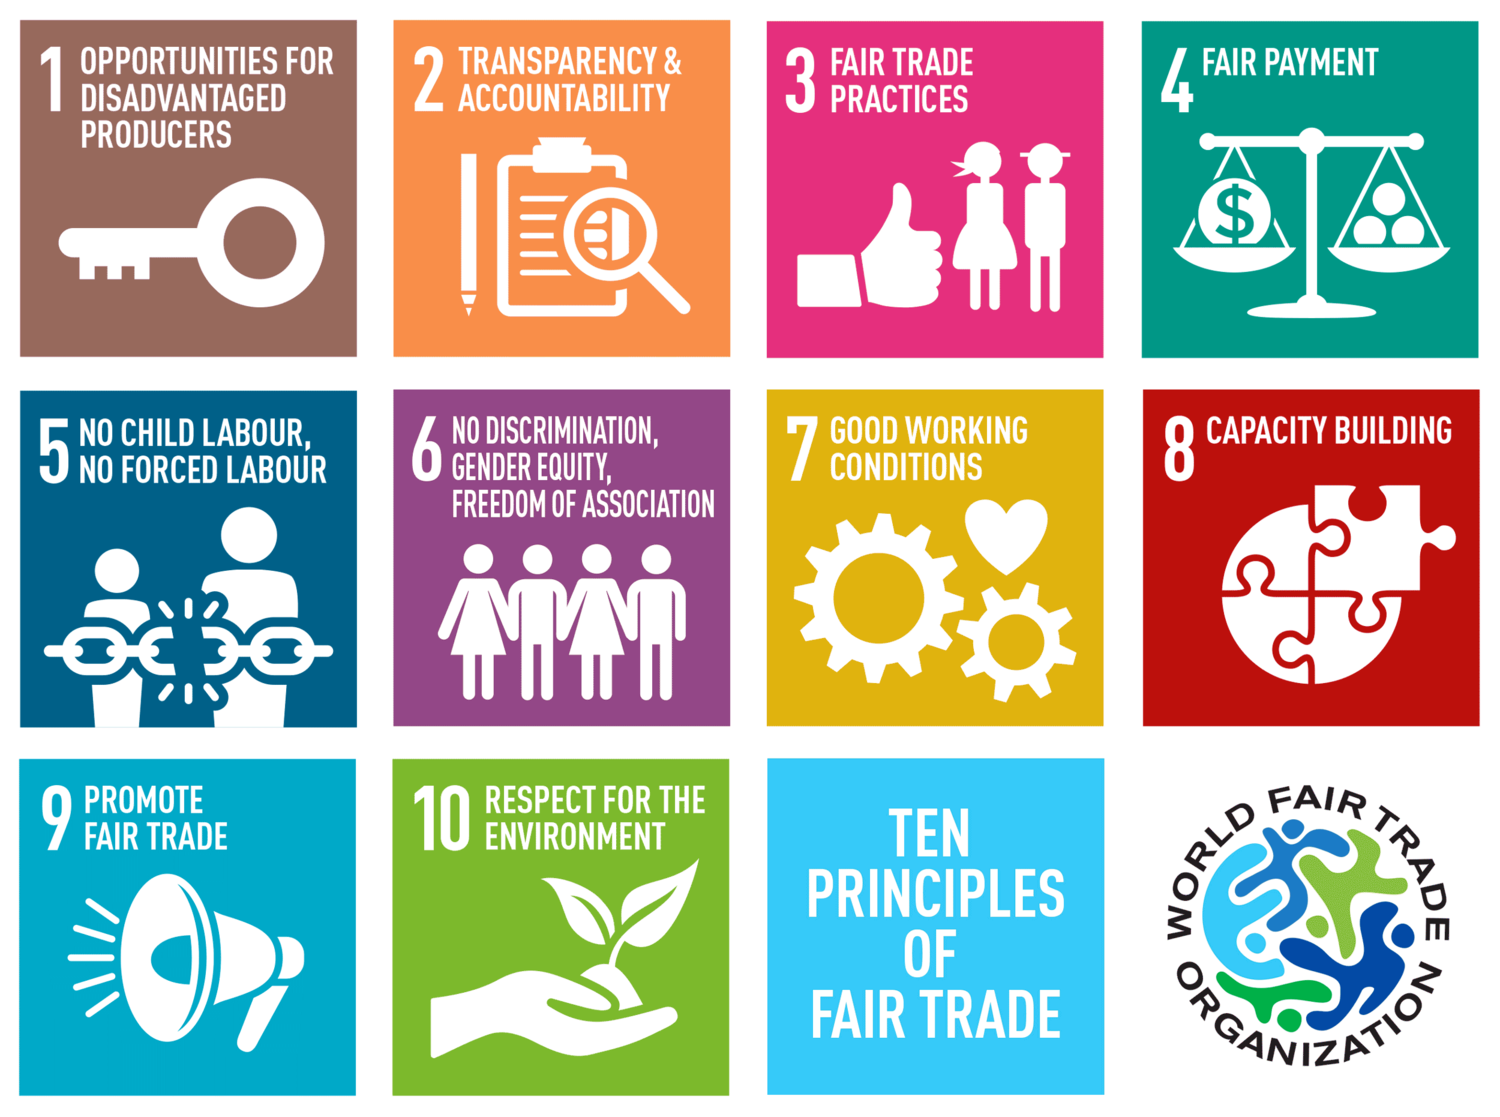 Ten Principles of Fair Trade